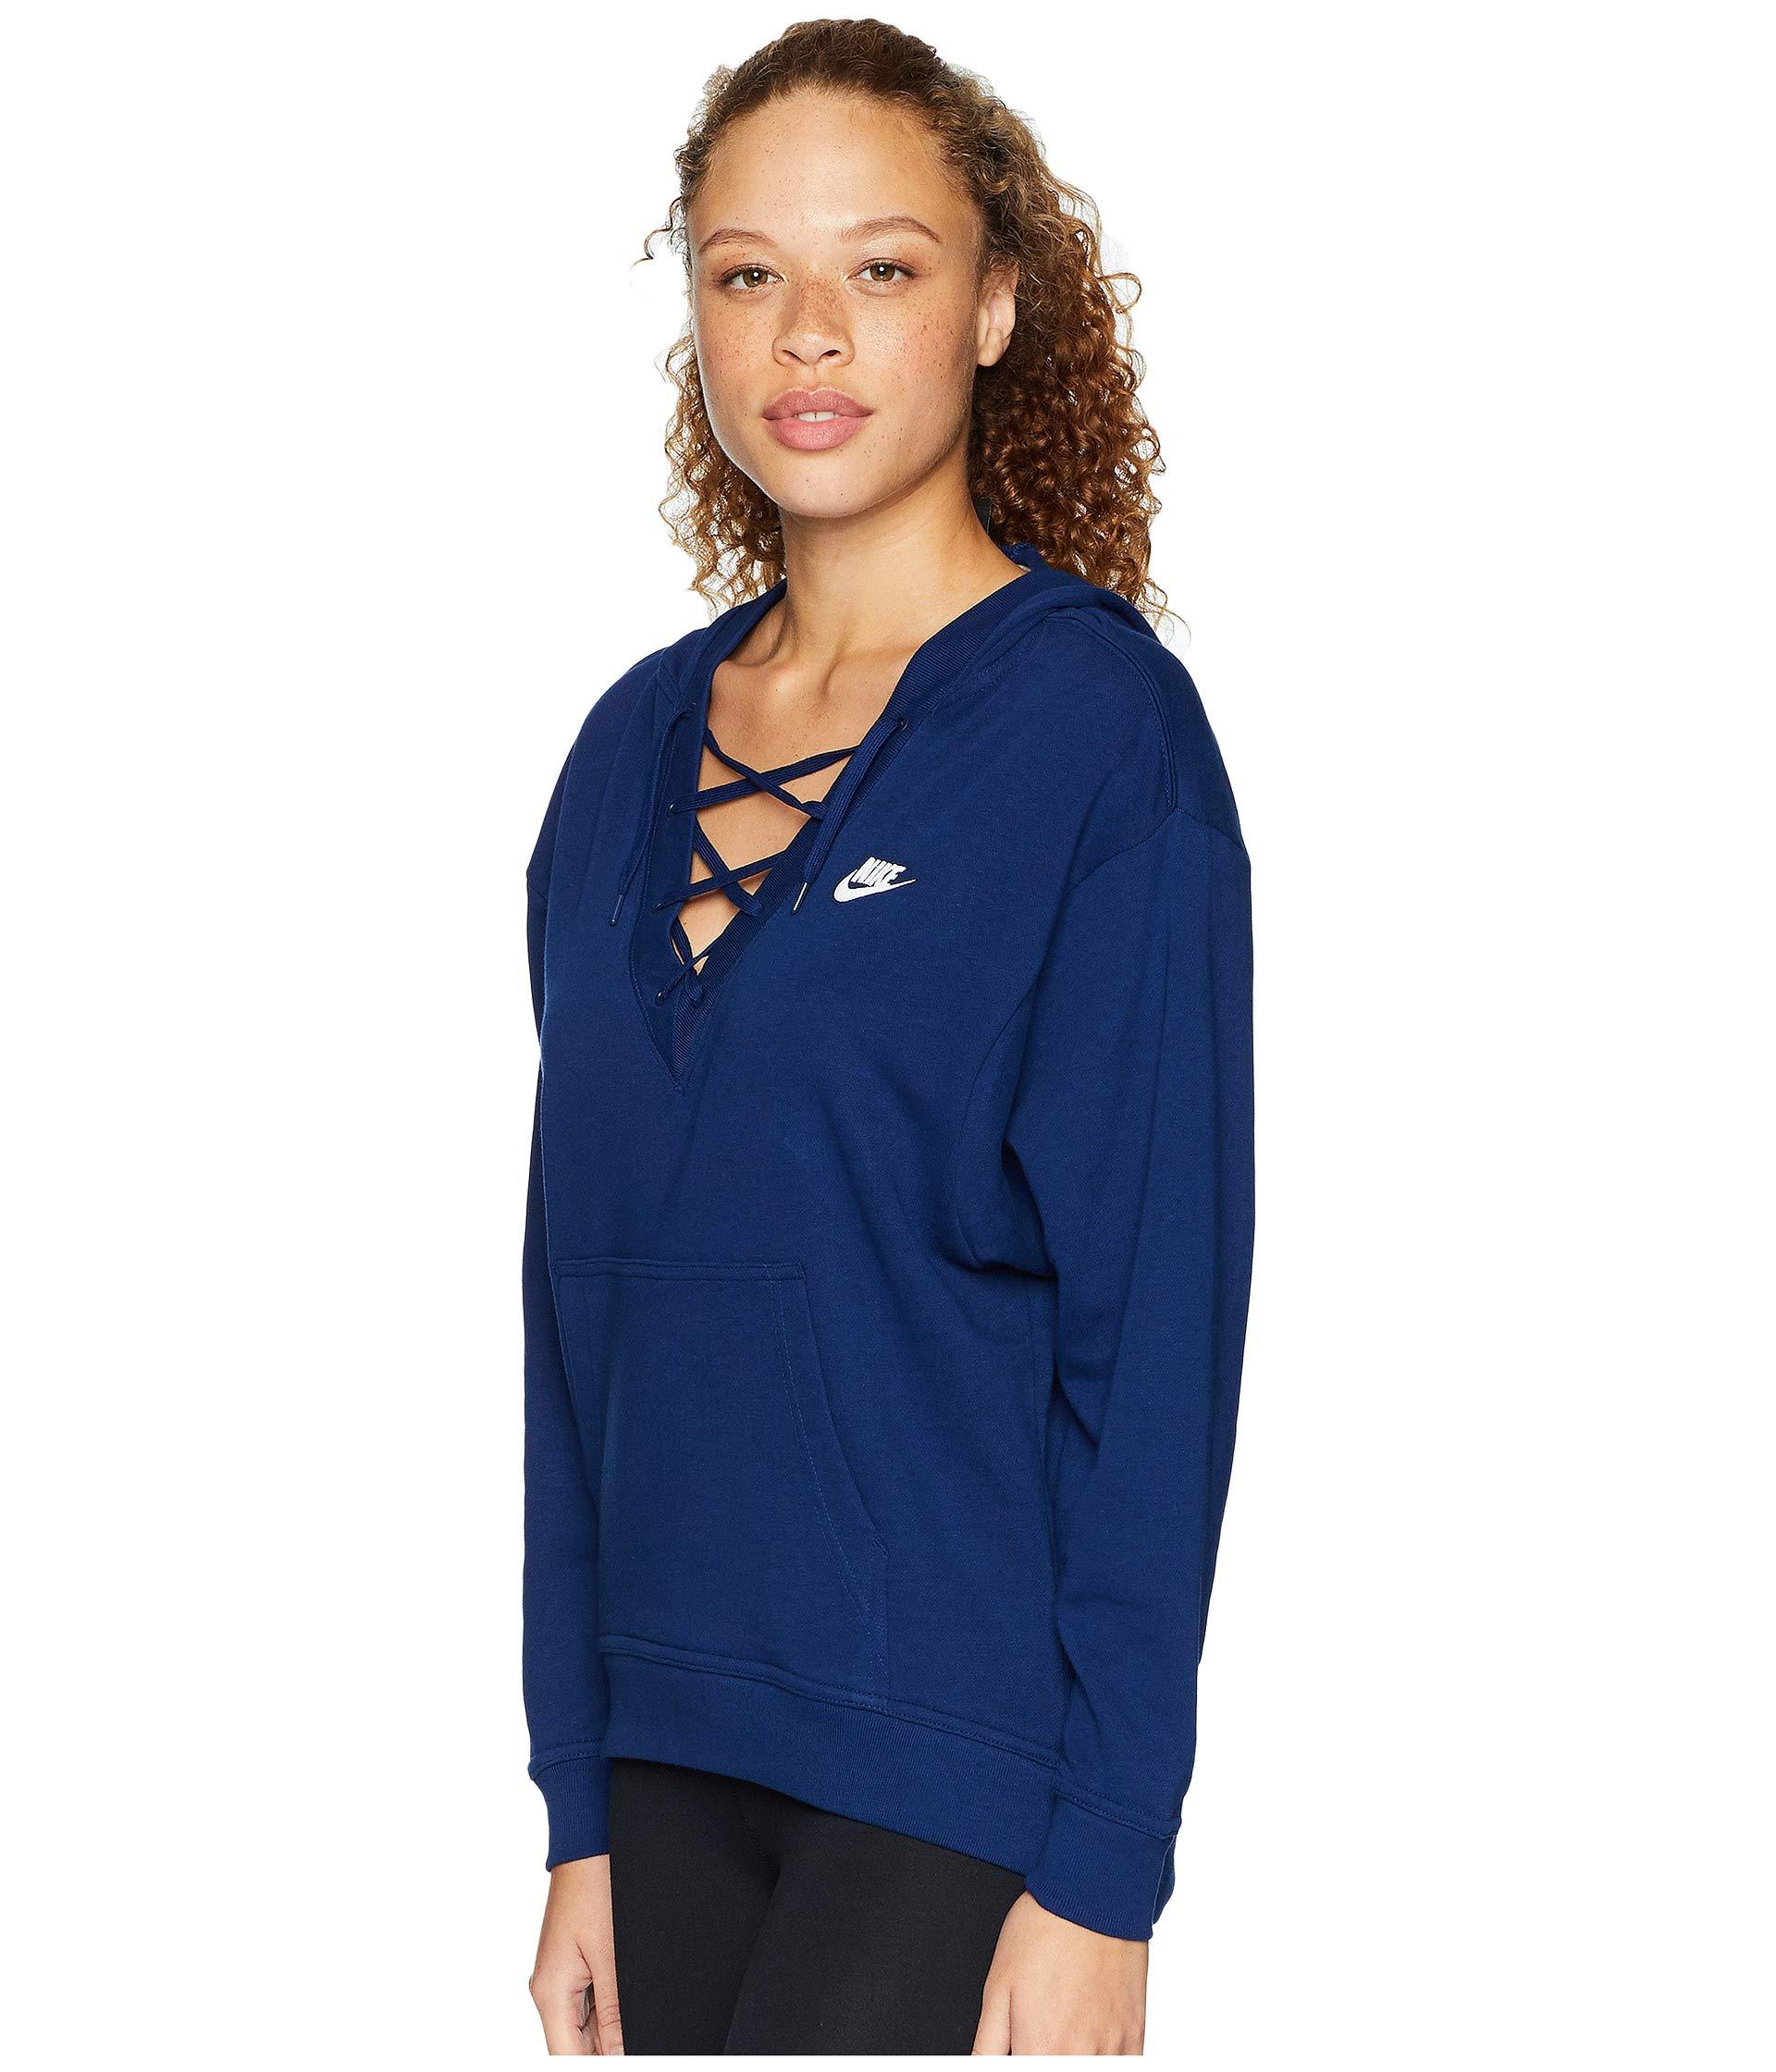 8bc5827f910c Lyst - Nike Club Lace-up Hoodie in Blue